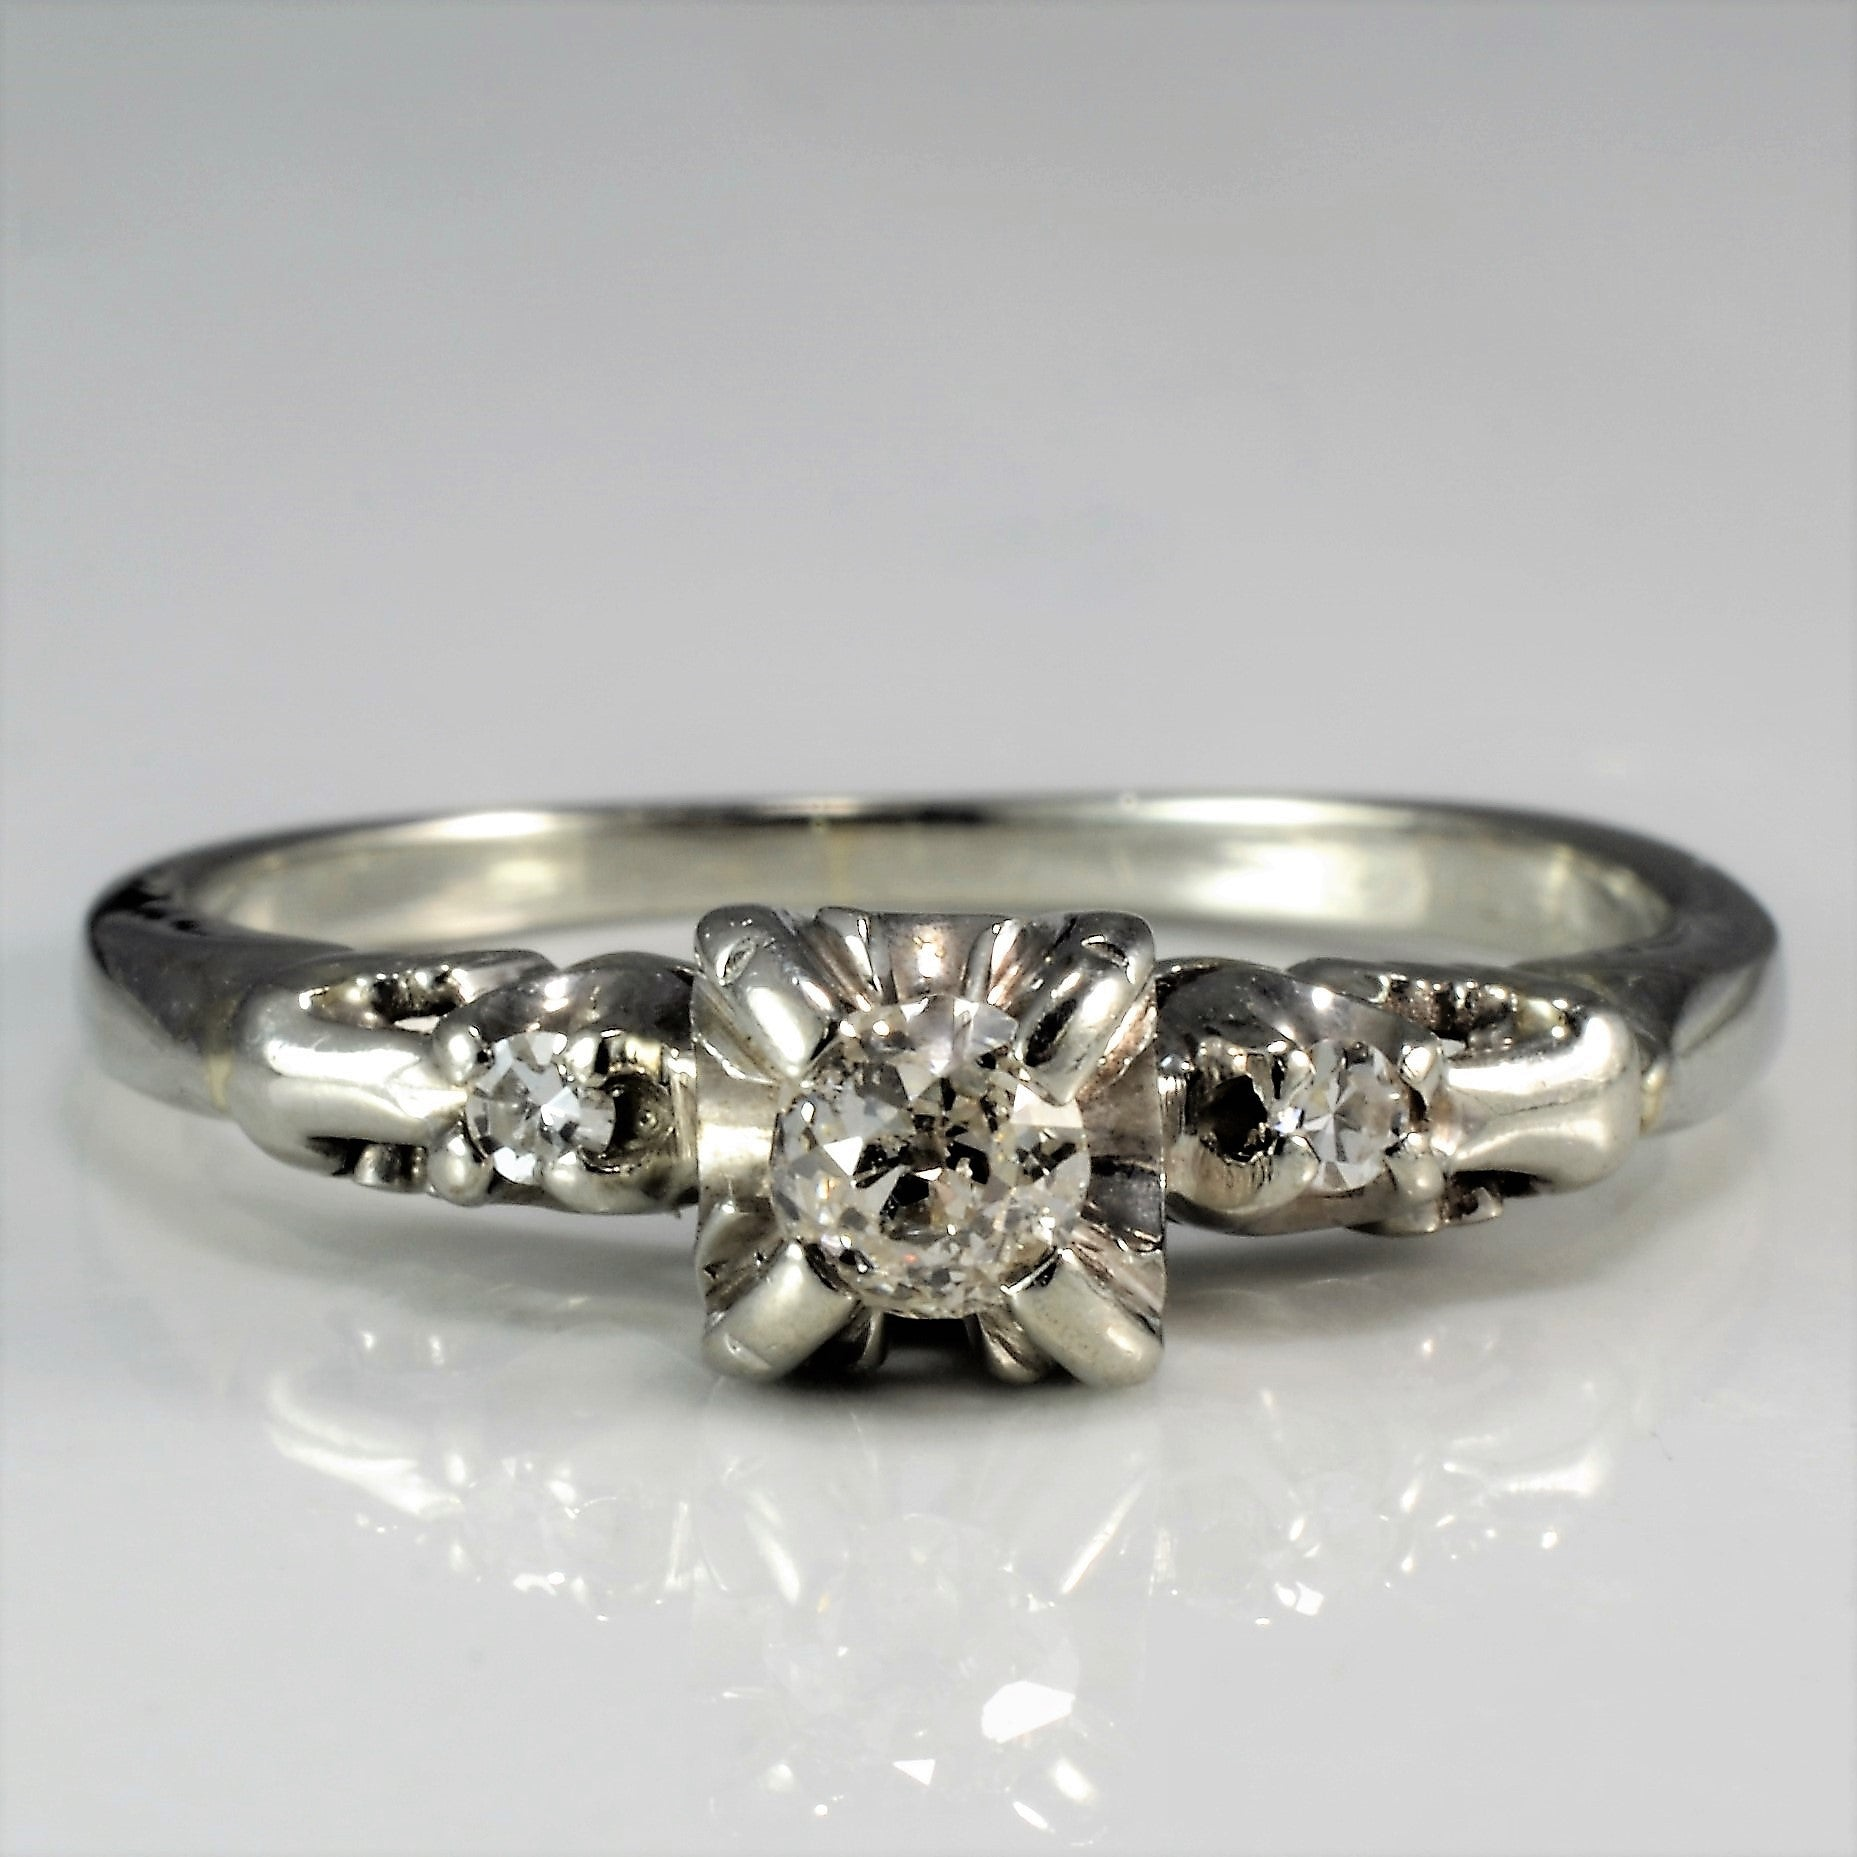 ring white in cut platinum french enr pave engagment european gold open old round engagement trellis diamond rings pav a brilliant